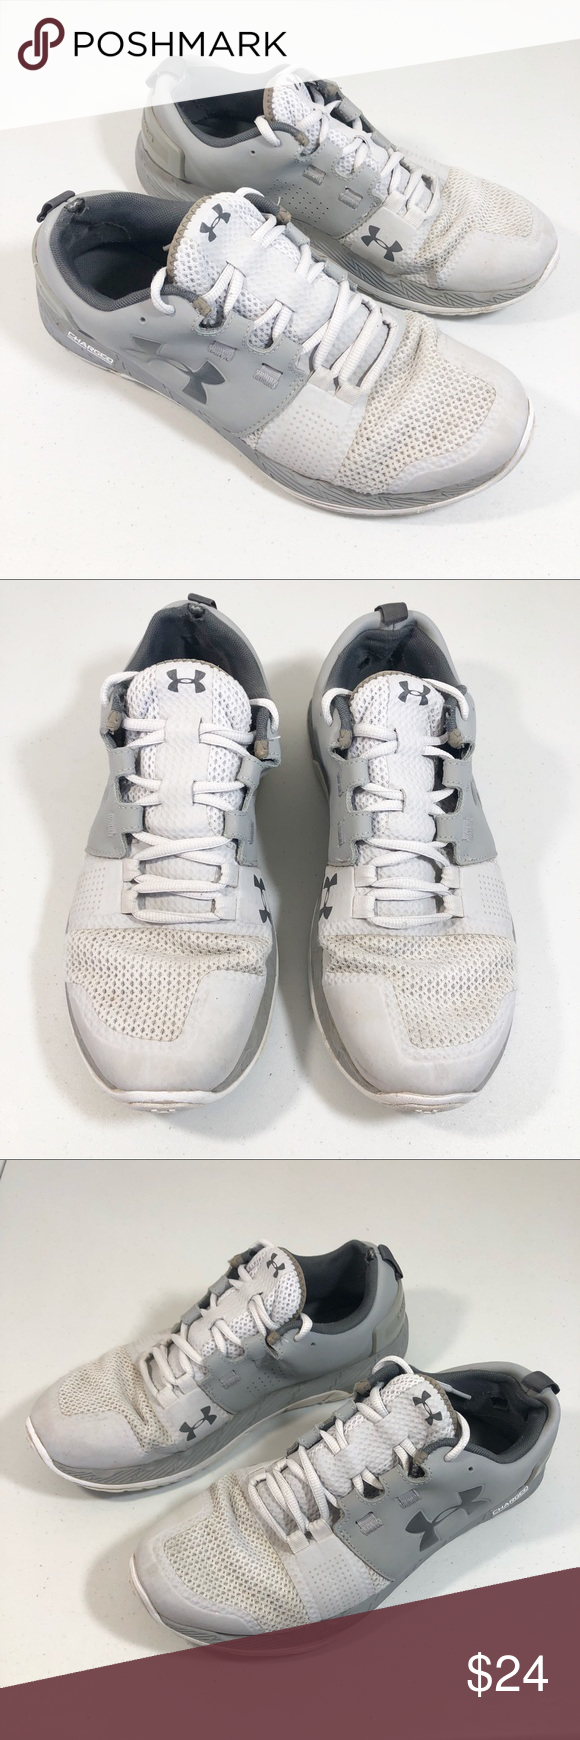 Under Armour Charged Core Athletic Shoe